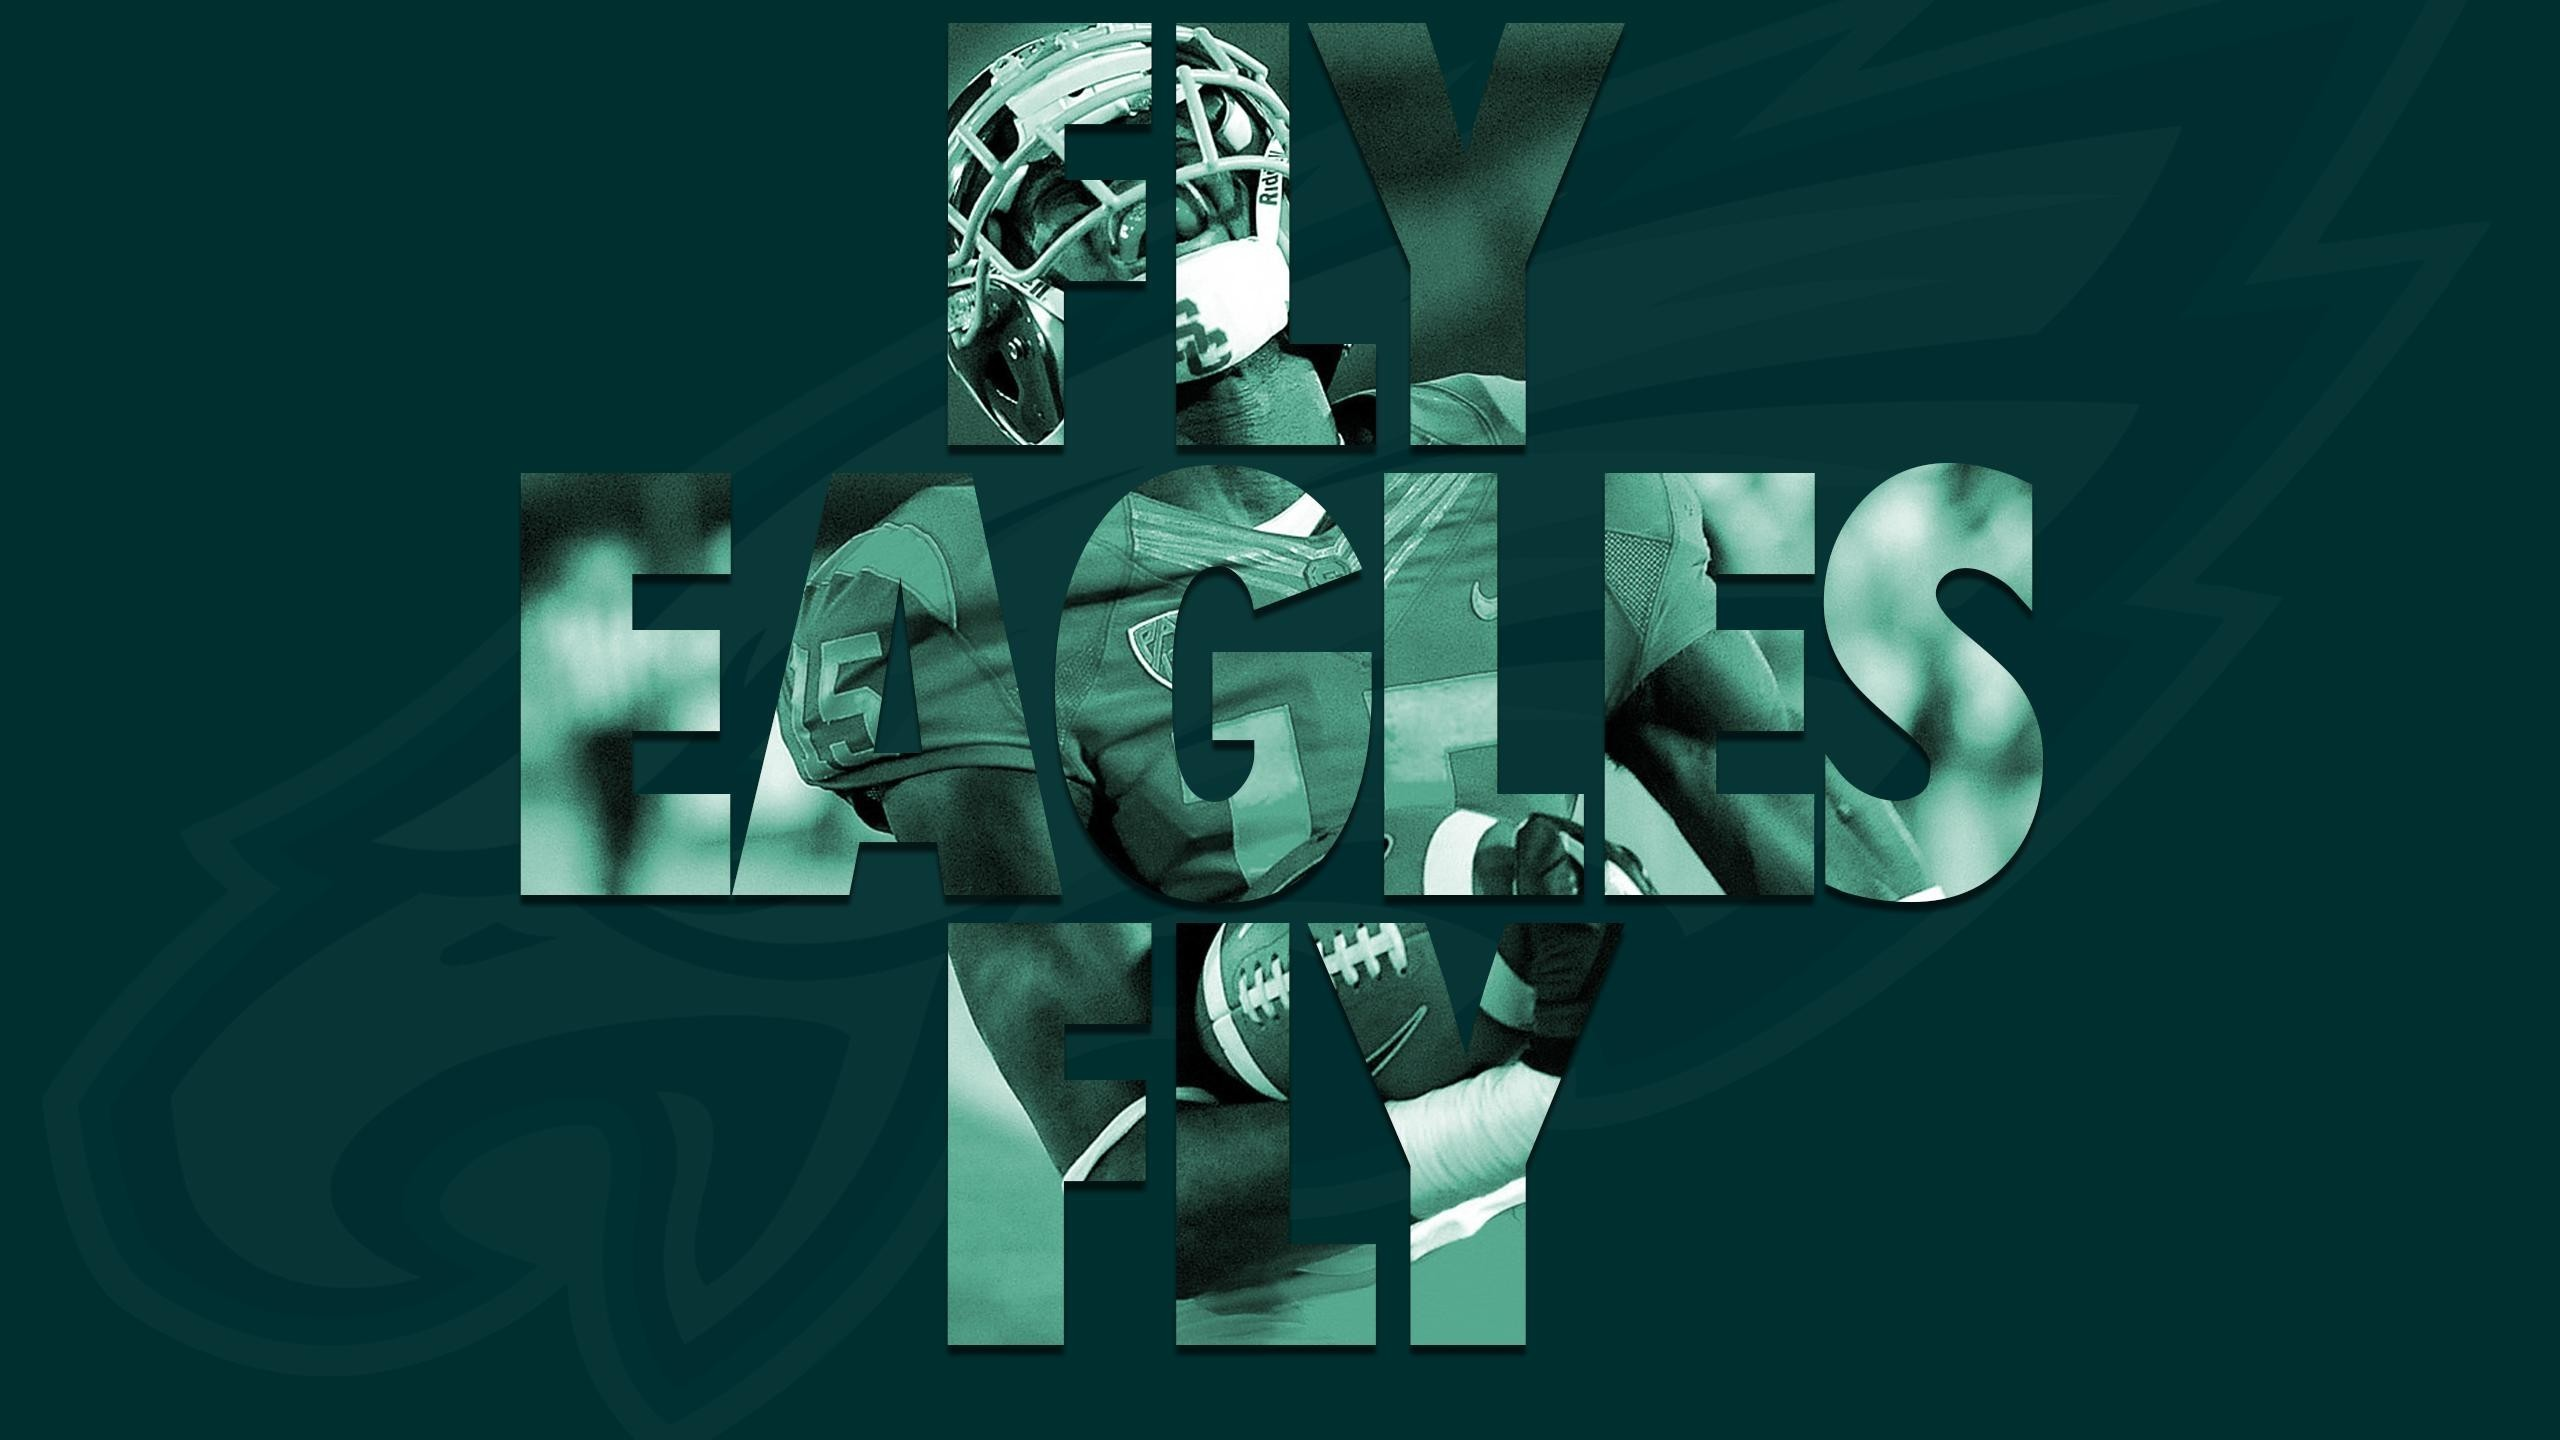 2560x1440 Res: 1920x1200, Philadelphia eagles wallpaper hd download. 1920x1200 Philadelphia  eagles wallpaper hd ...